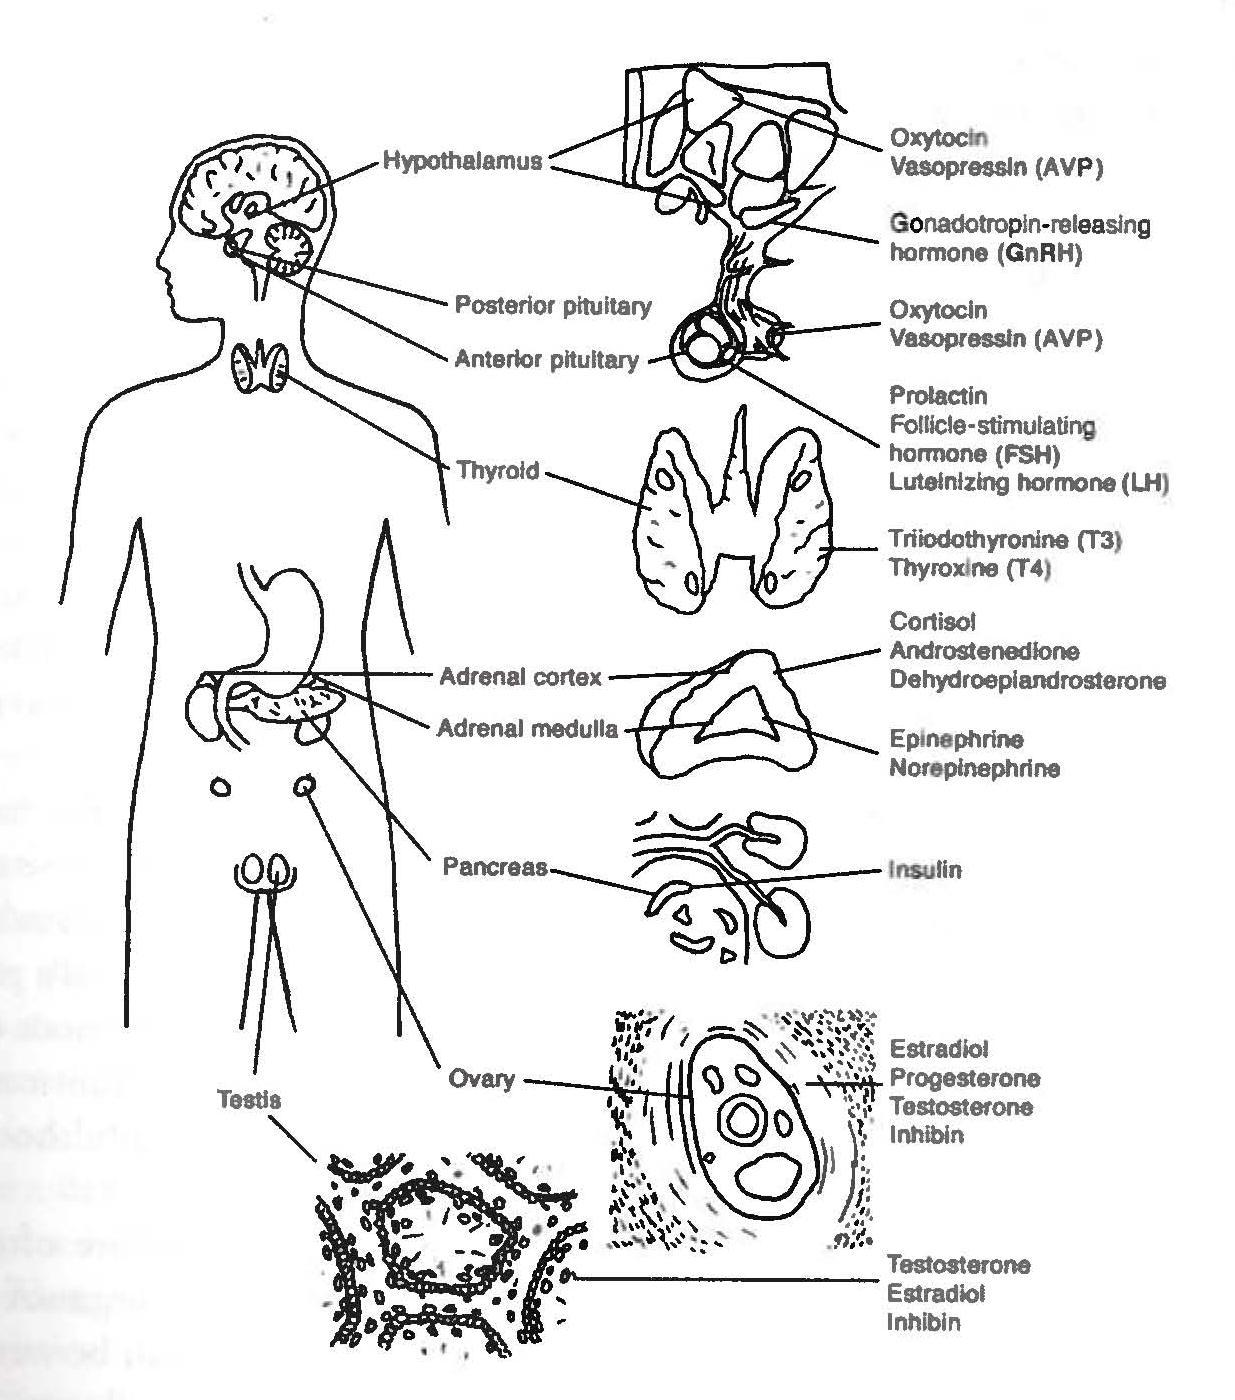 Endocrine System Diagram Worksheet endocrine system unlab...